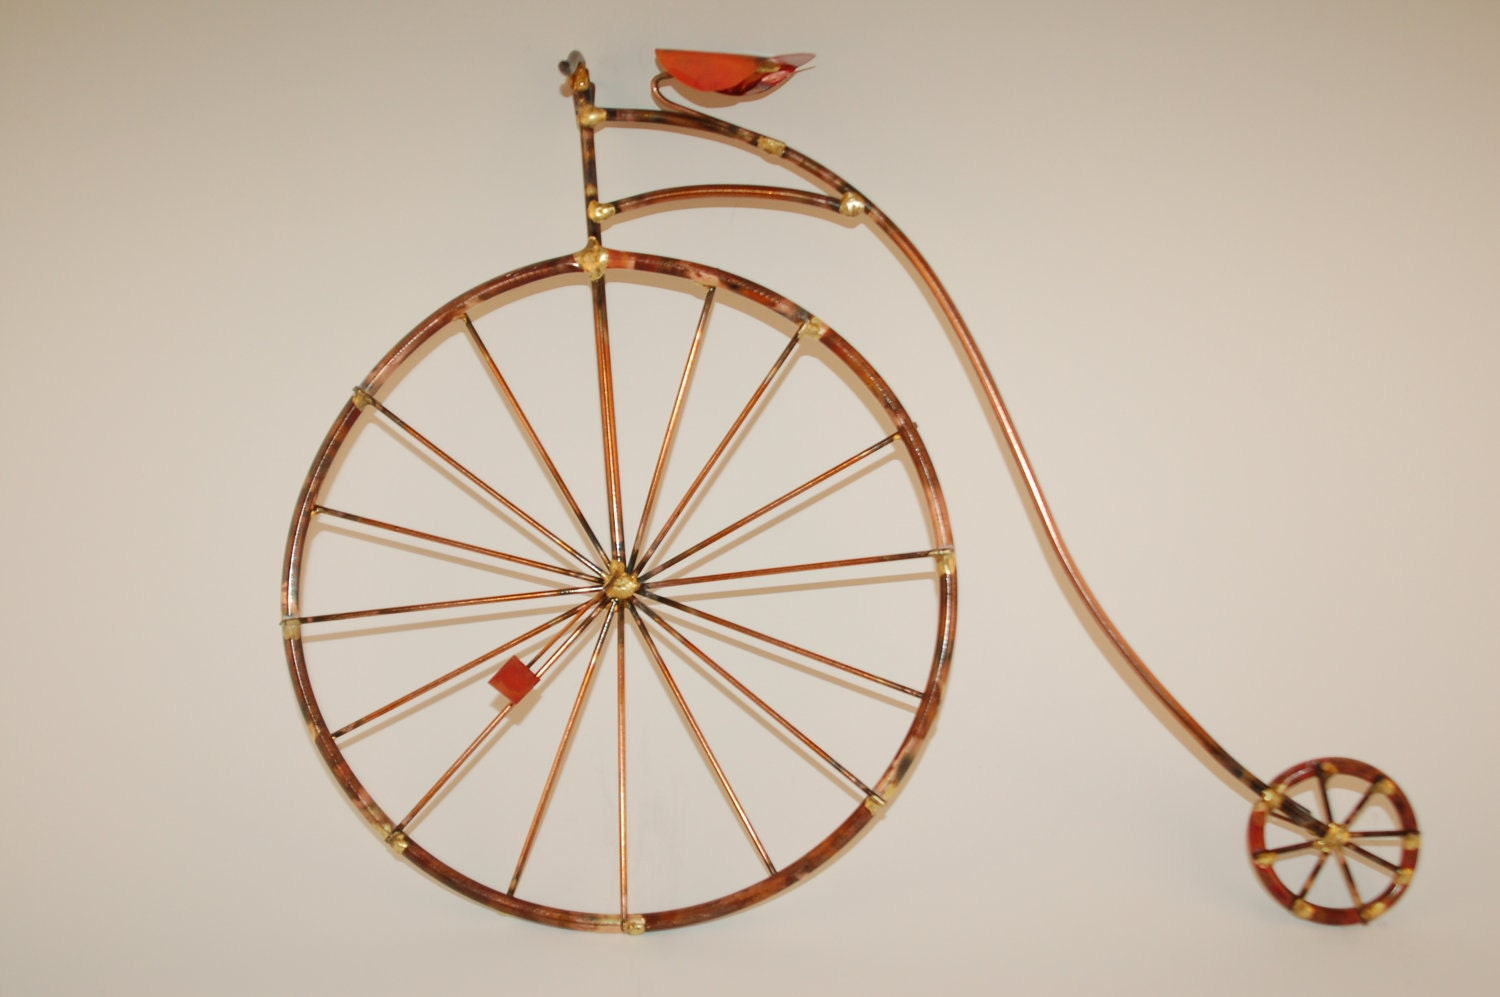 Wall Art Metal Bicycle : Penny farthing bikes old fashion giant bicyclehigh